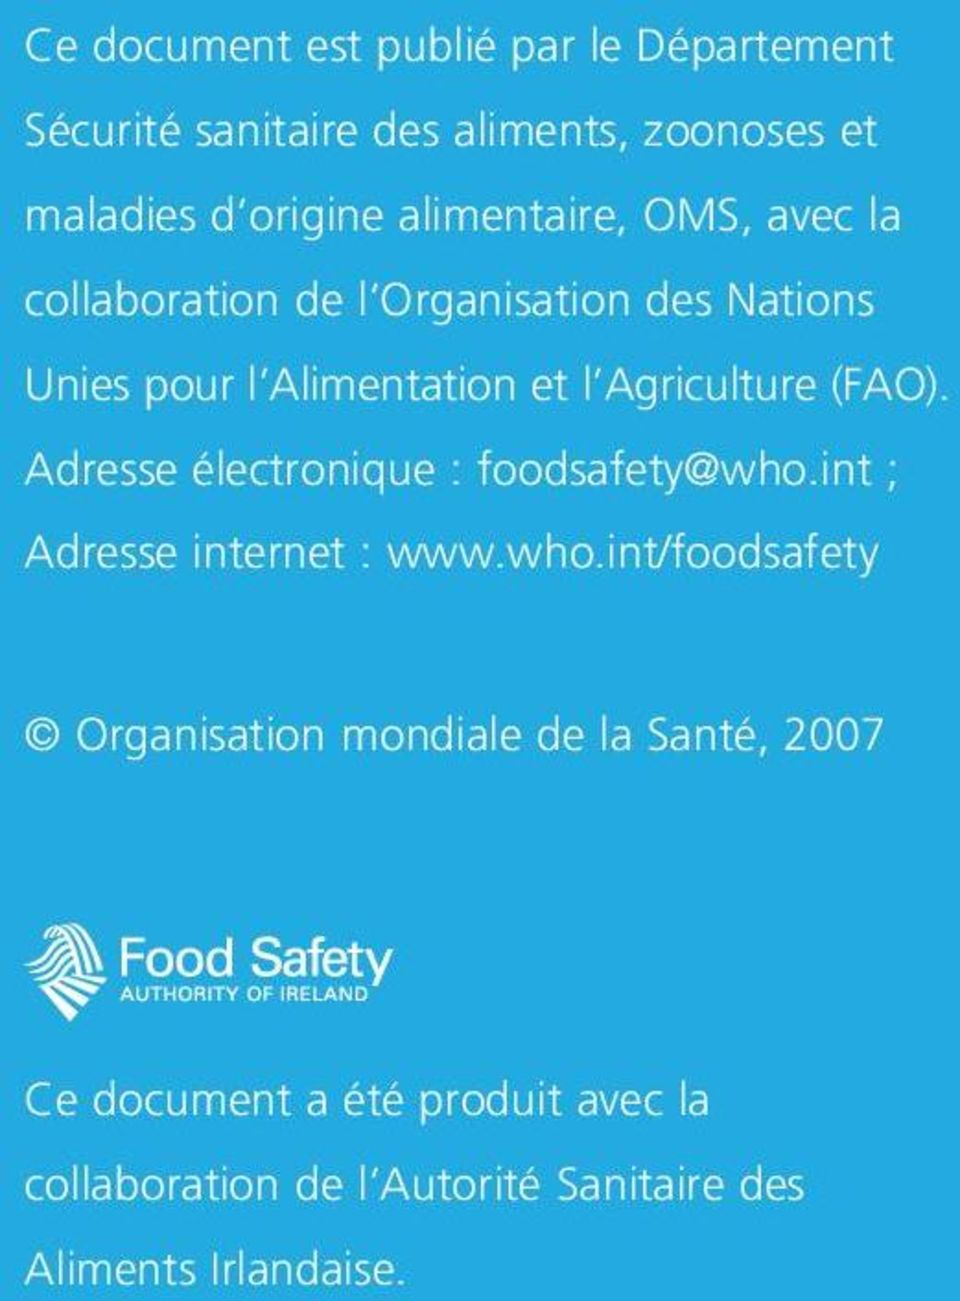 Agriculture (FAO). Adresse électronique : foodsafety@who.